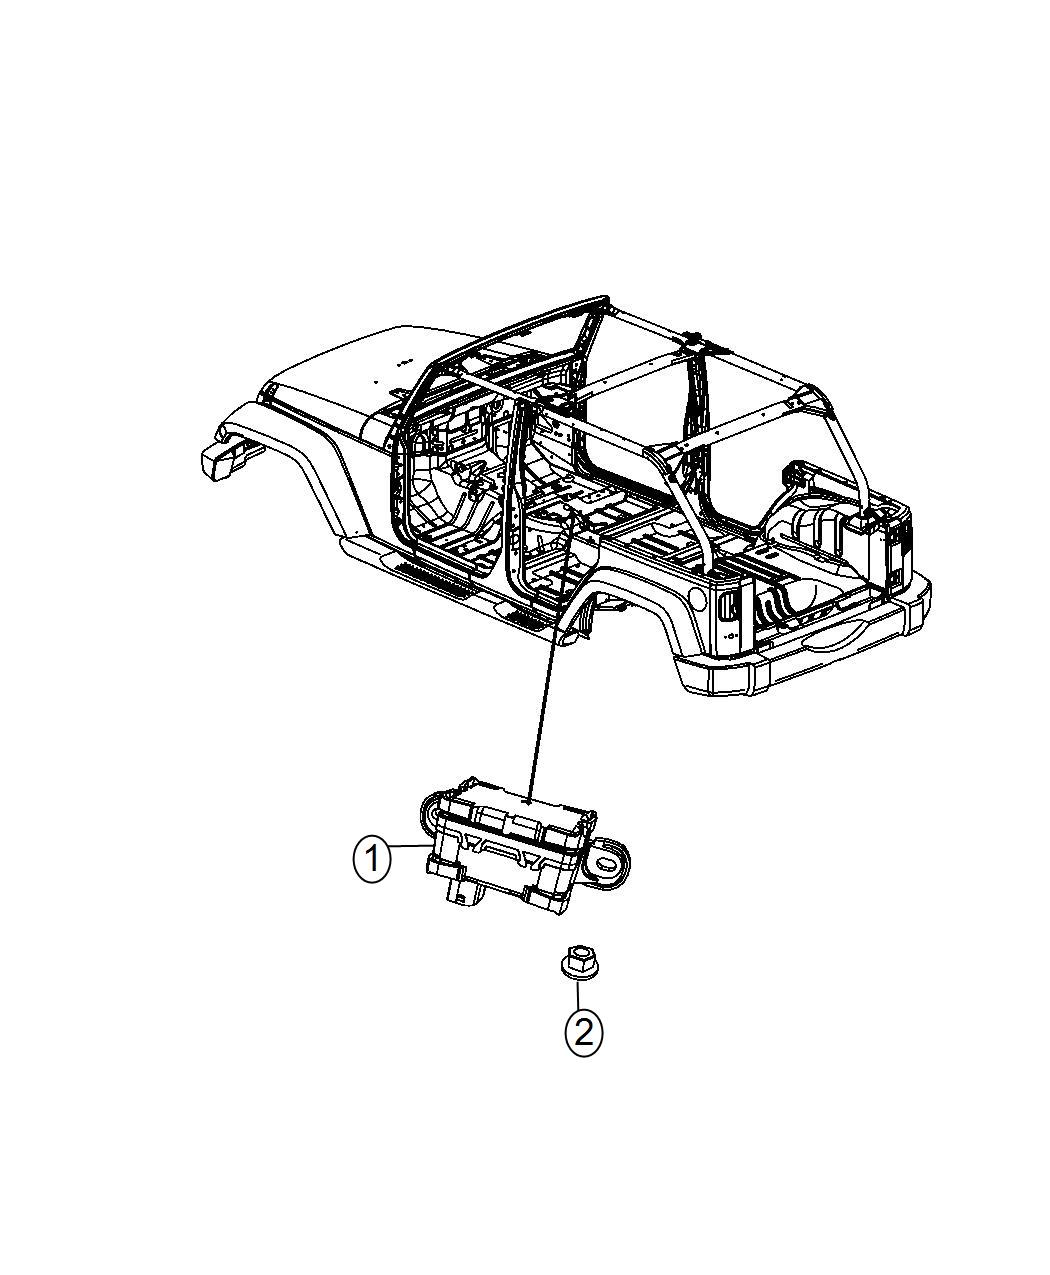 2014 Jeep Wrangler Sensor. Dynamics. Used for: lateral